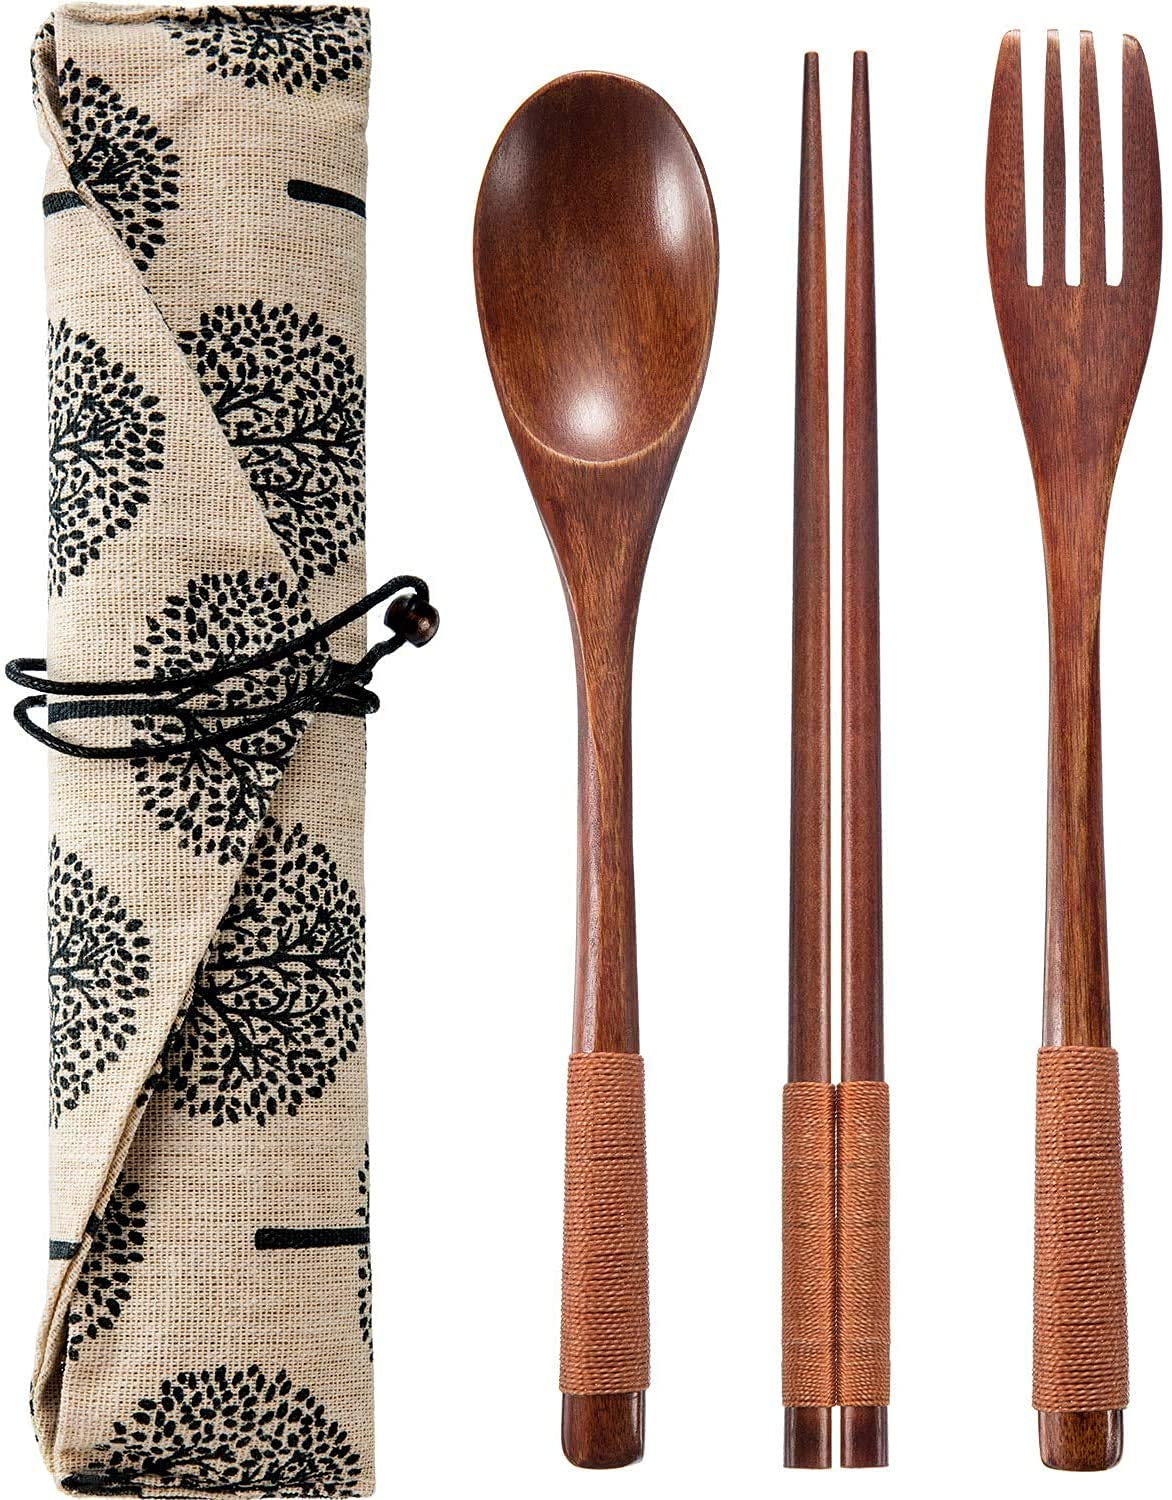 7 Best Cutlery Set For Traveling In India 2021